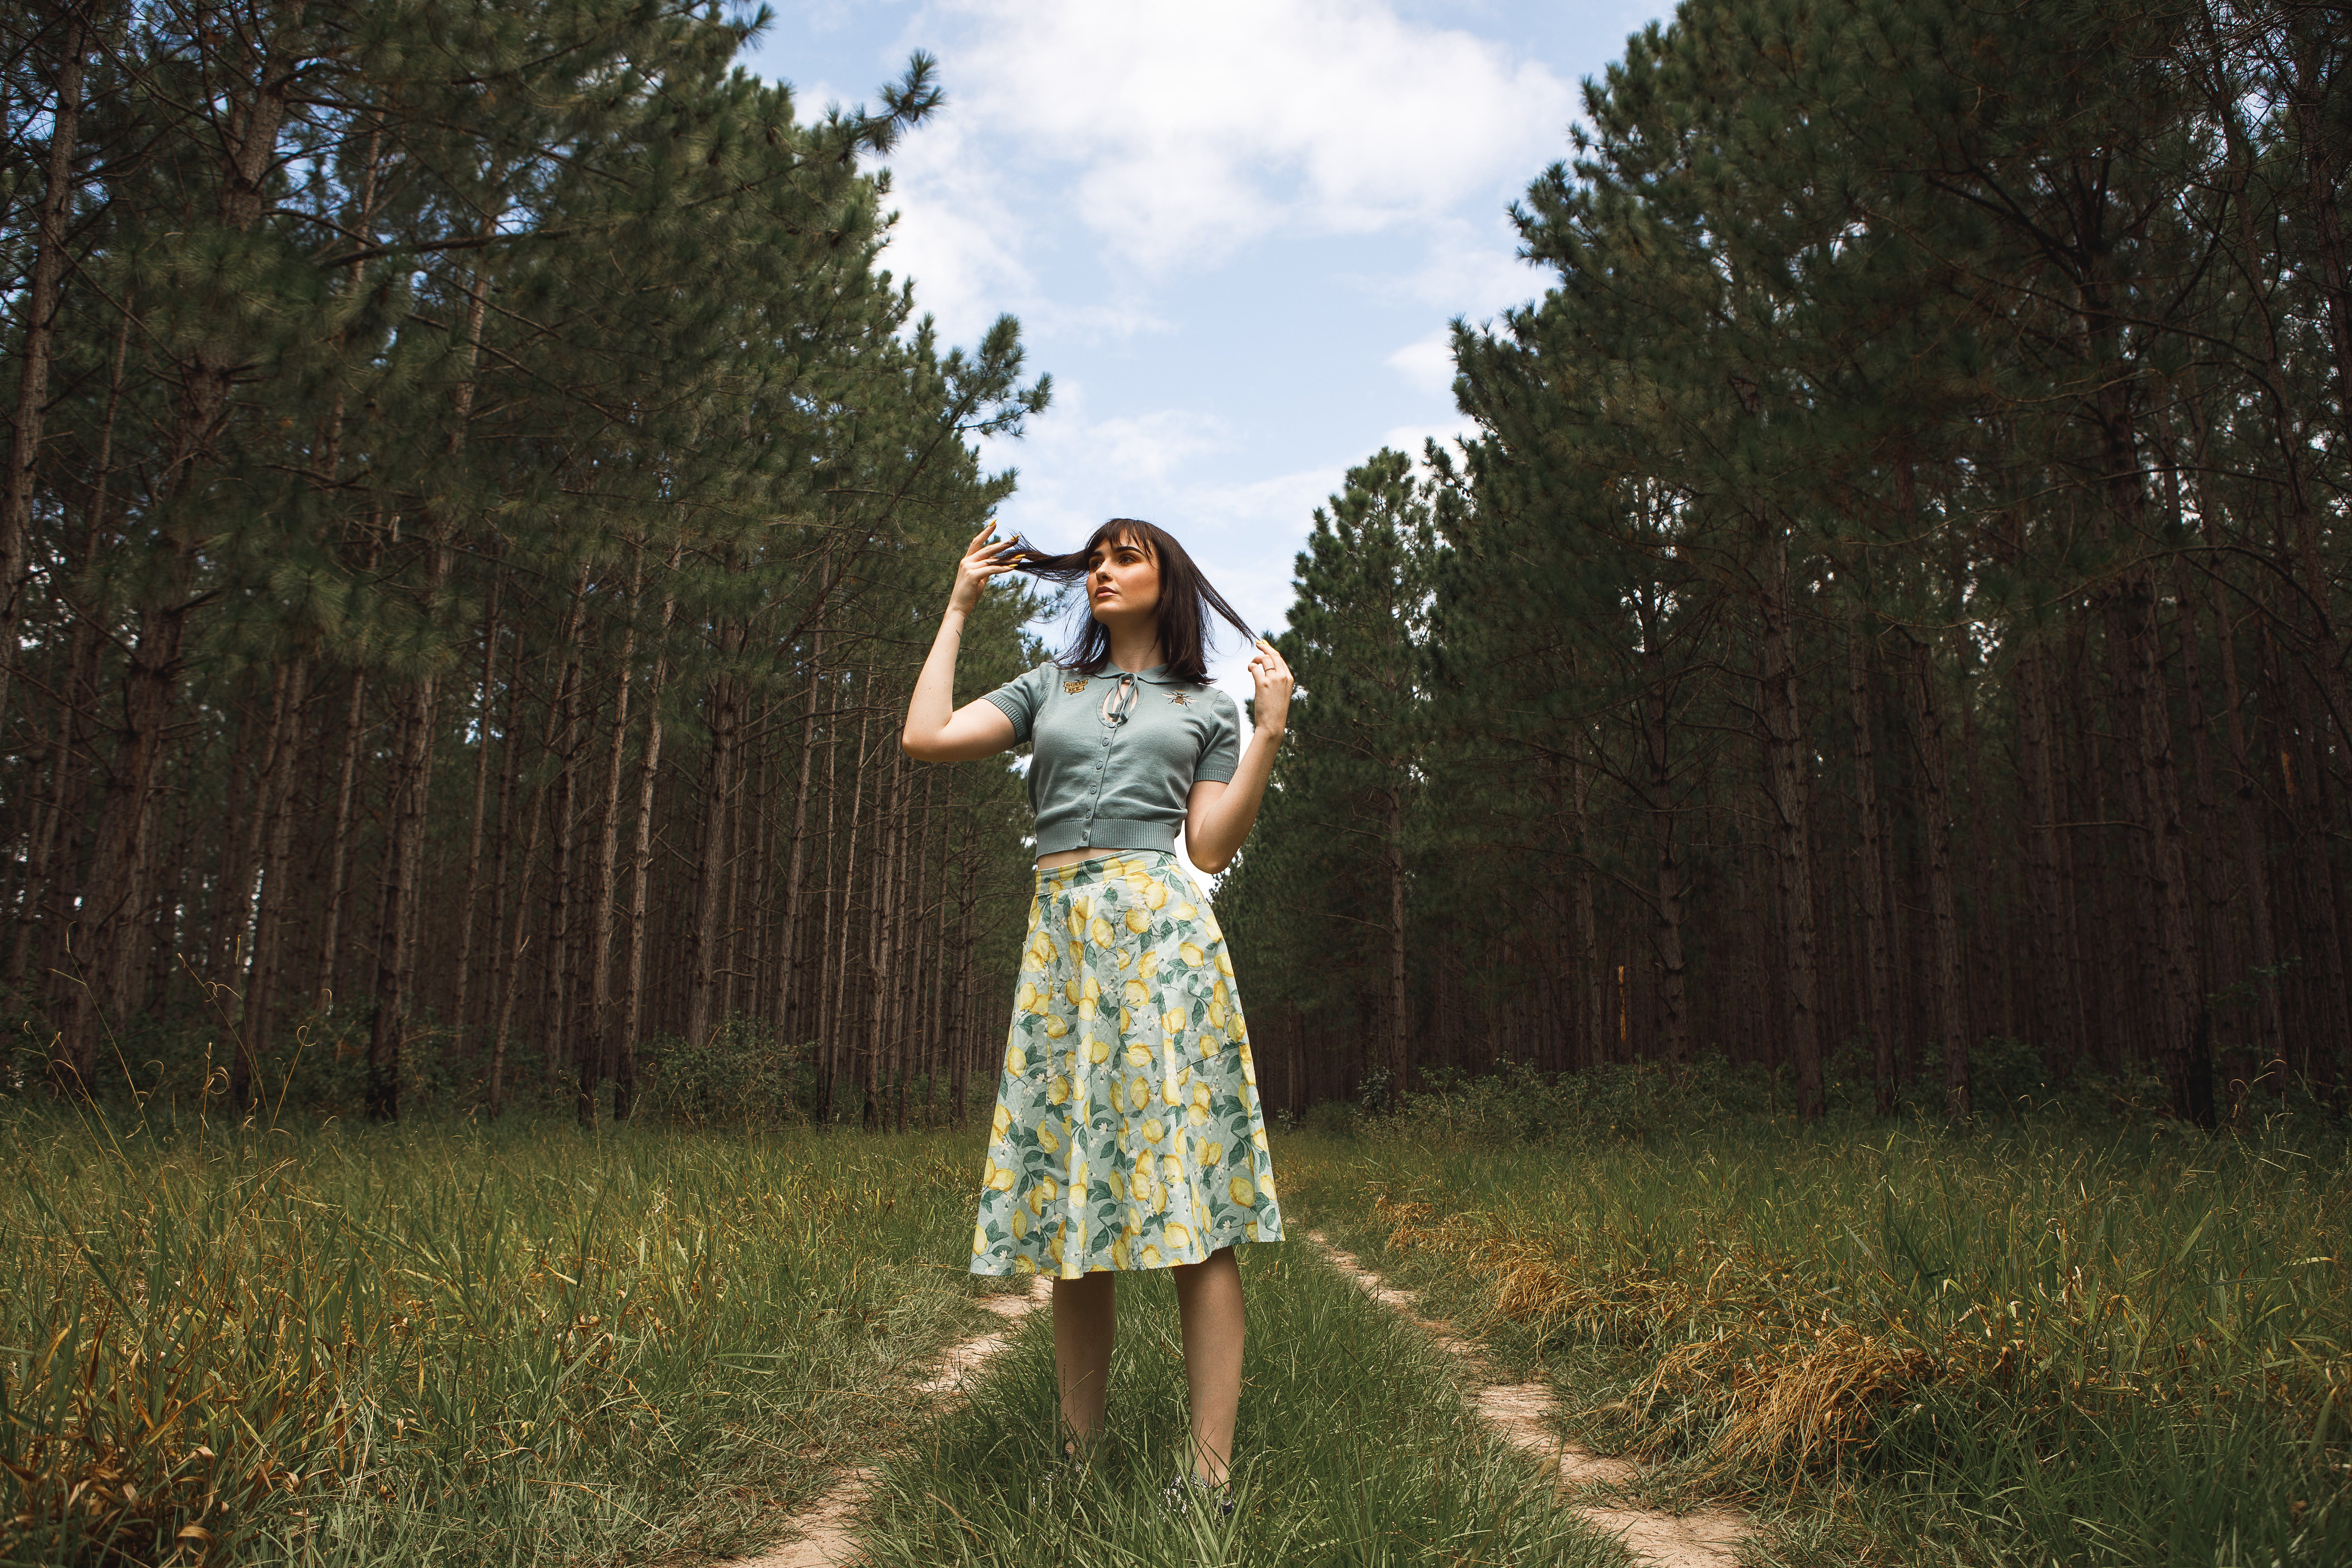 Standing Woman Wearing Blue And Yellow Floral Skirt